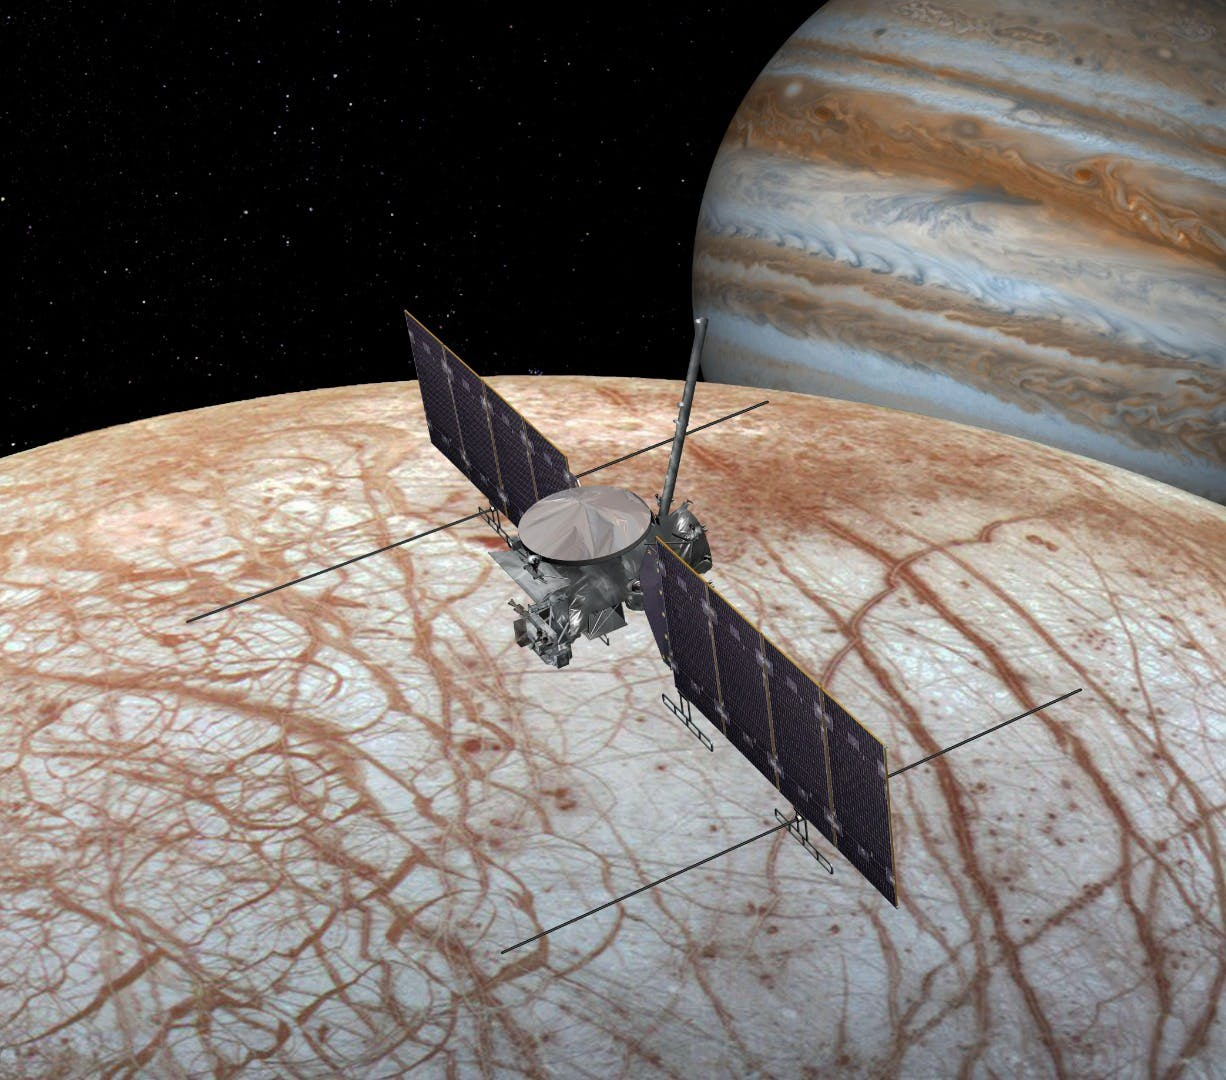 NASA confirms mission to study Jupiter's icy moon